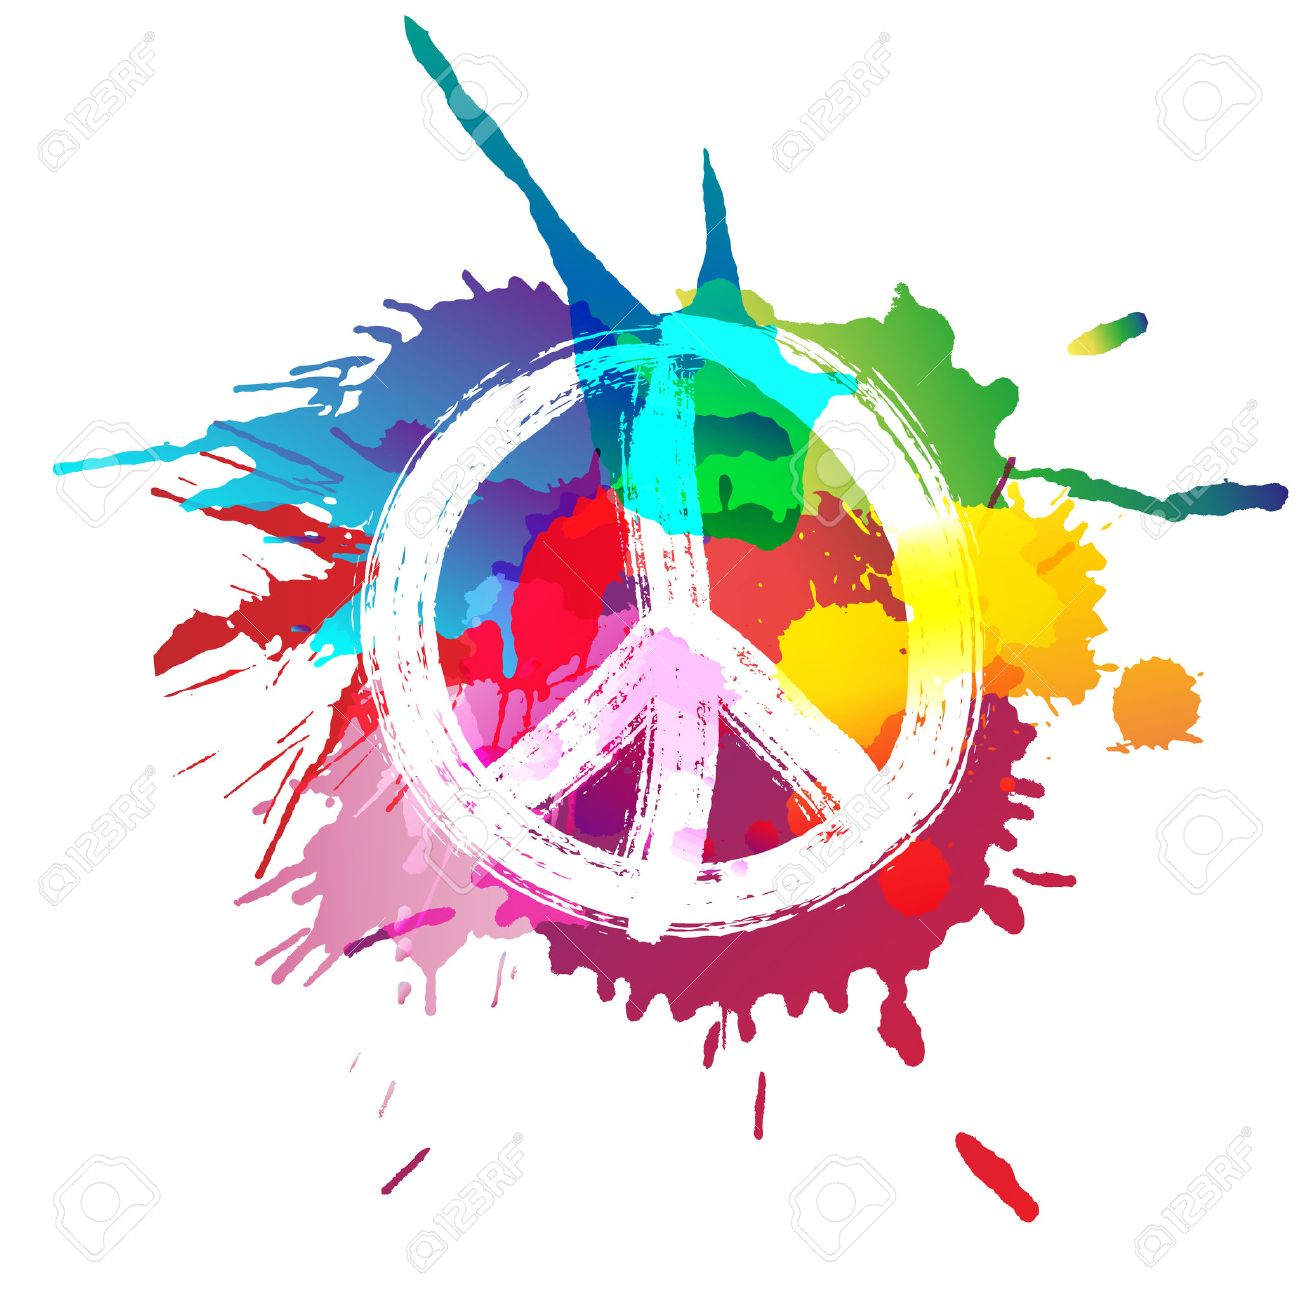 peace sign in front